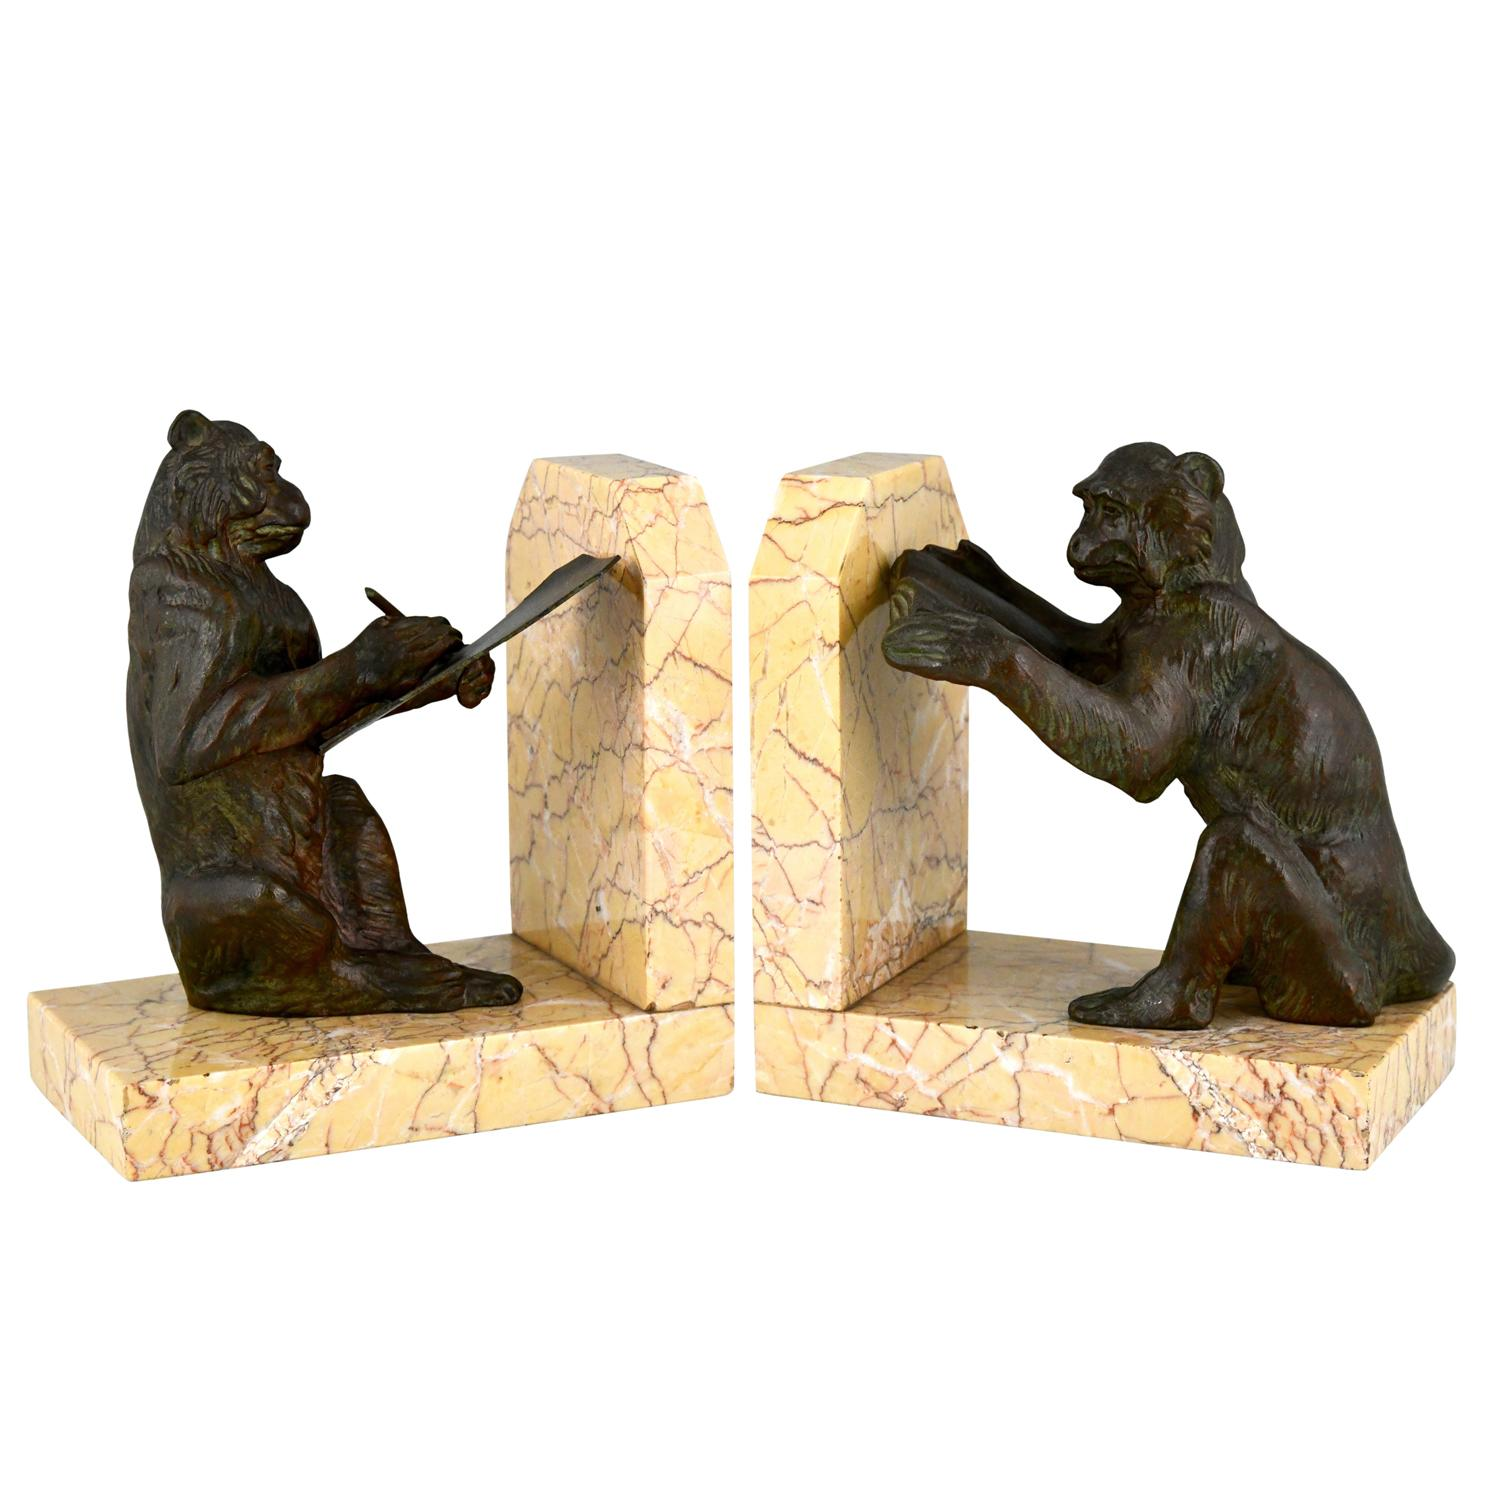 Art Deco Monkey Bookends by Carlier, France, 1930